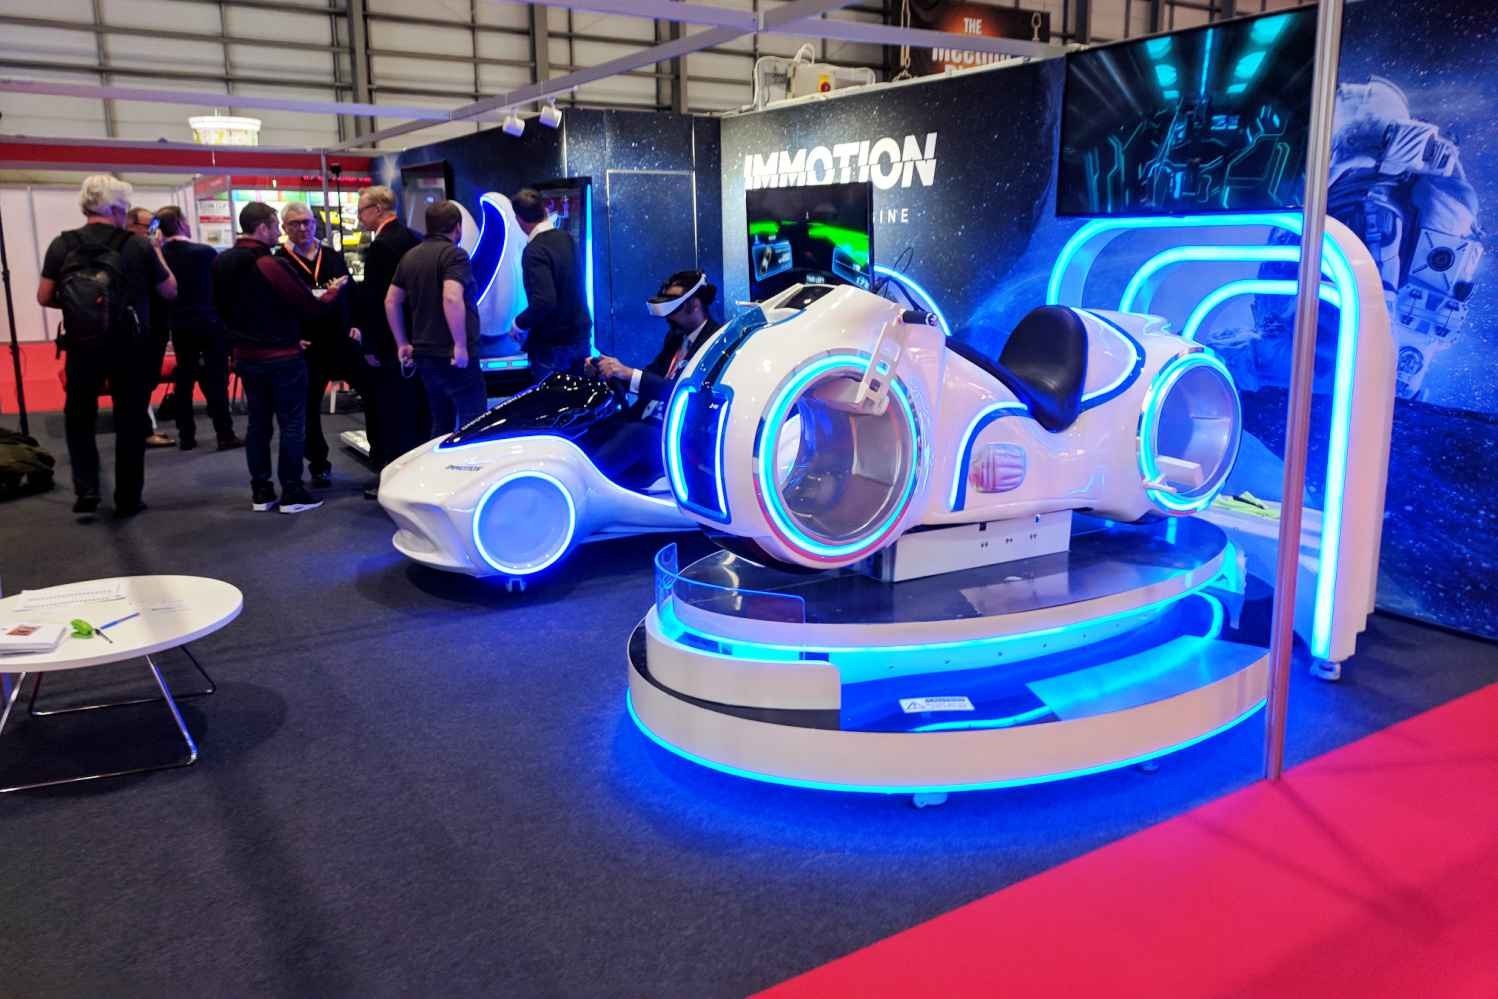 immotion group ride vehicle eag international expo